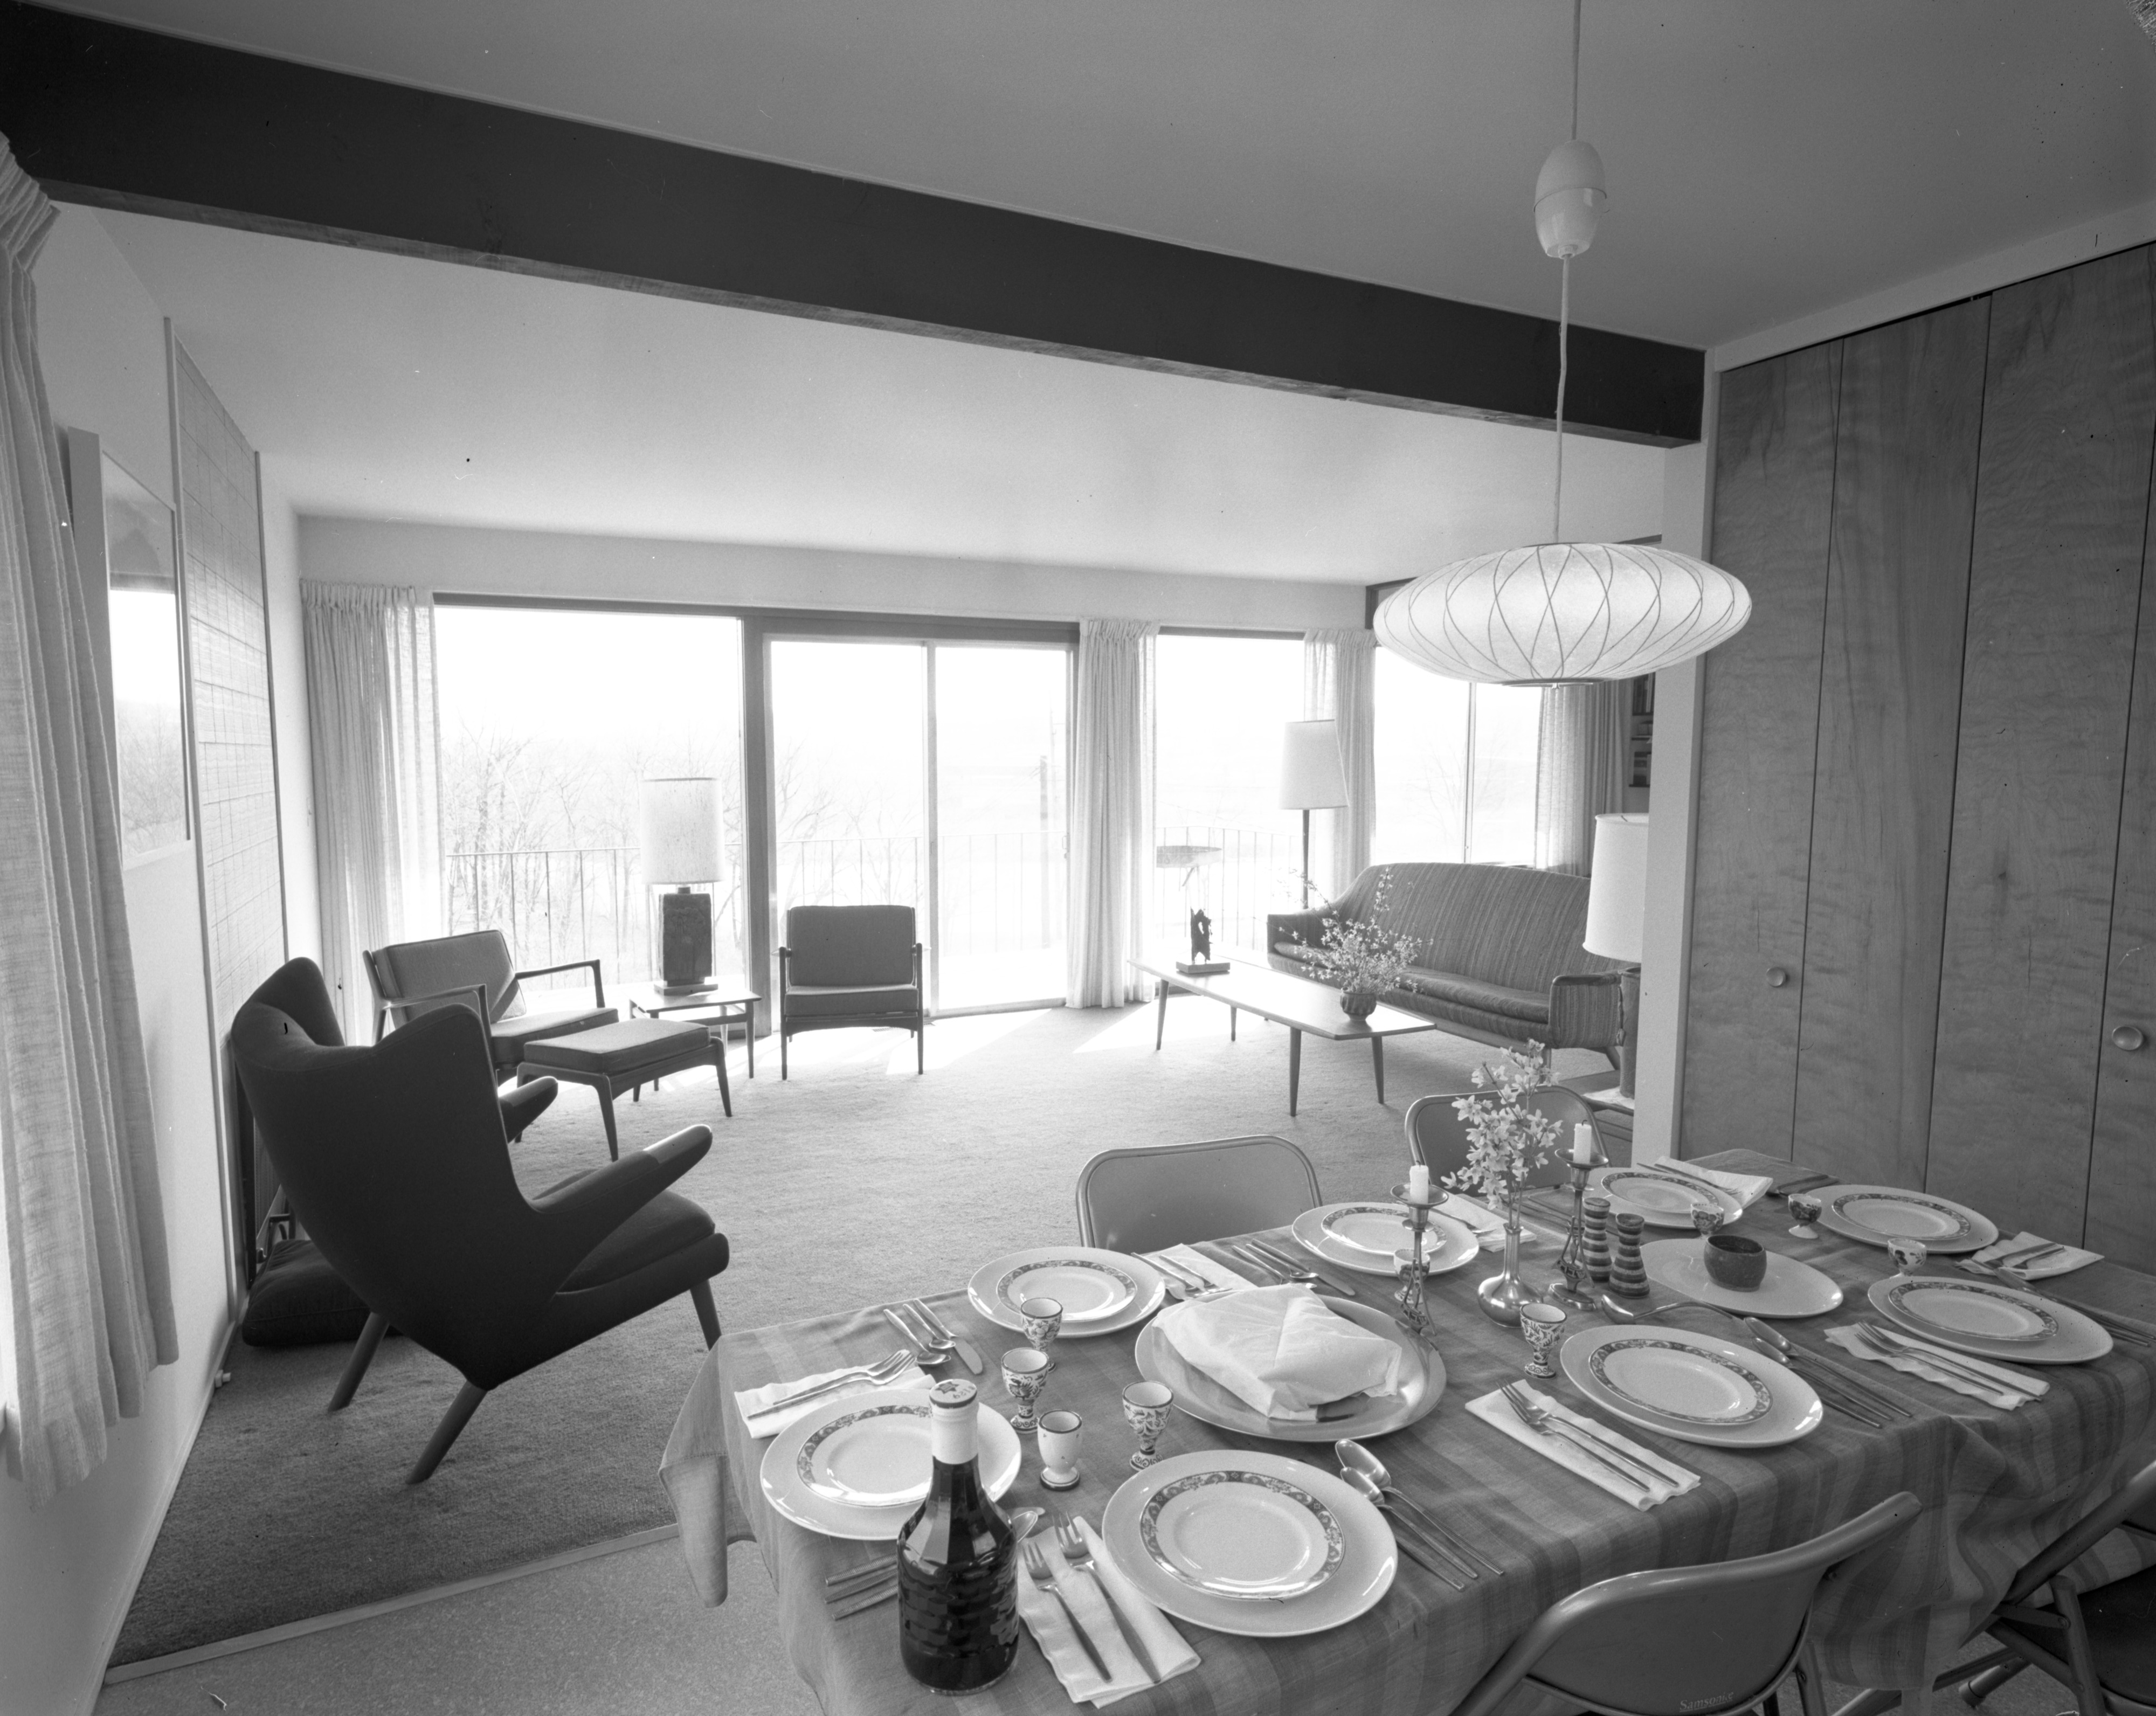 Spectacular Views of the Huron River at Myron Levine Home, April 1968 image